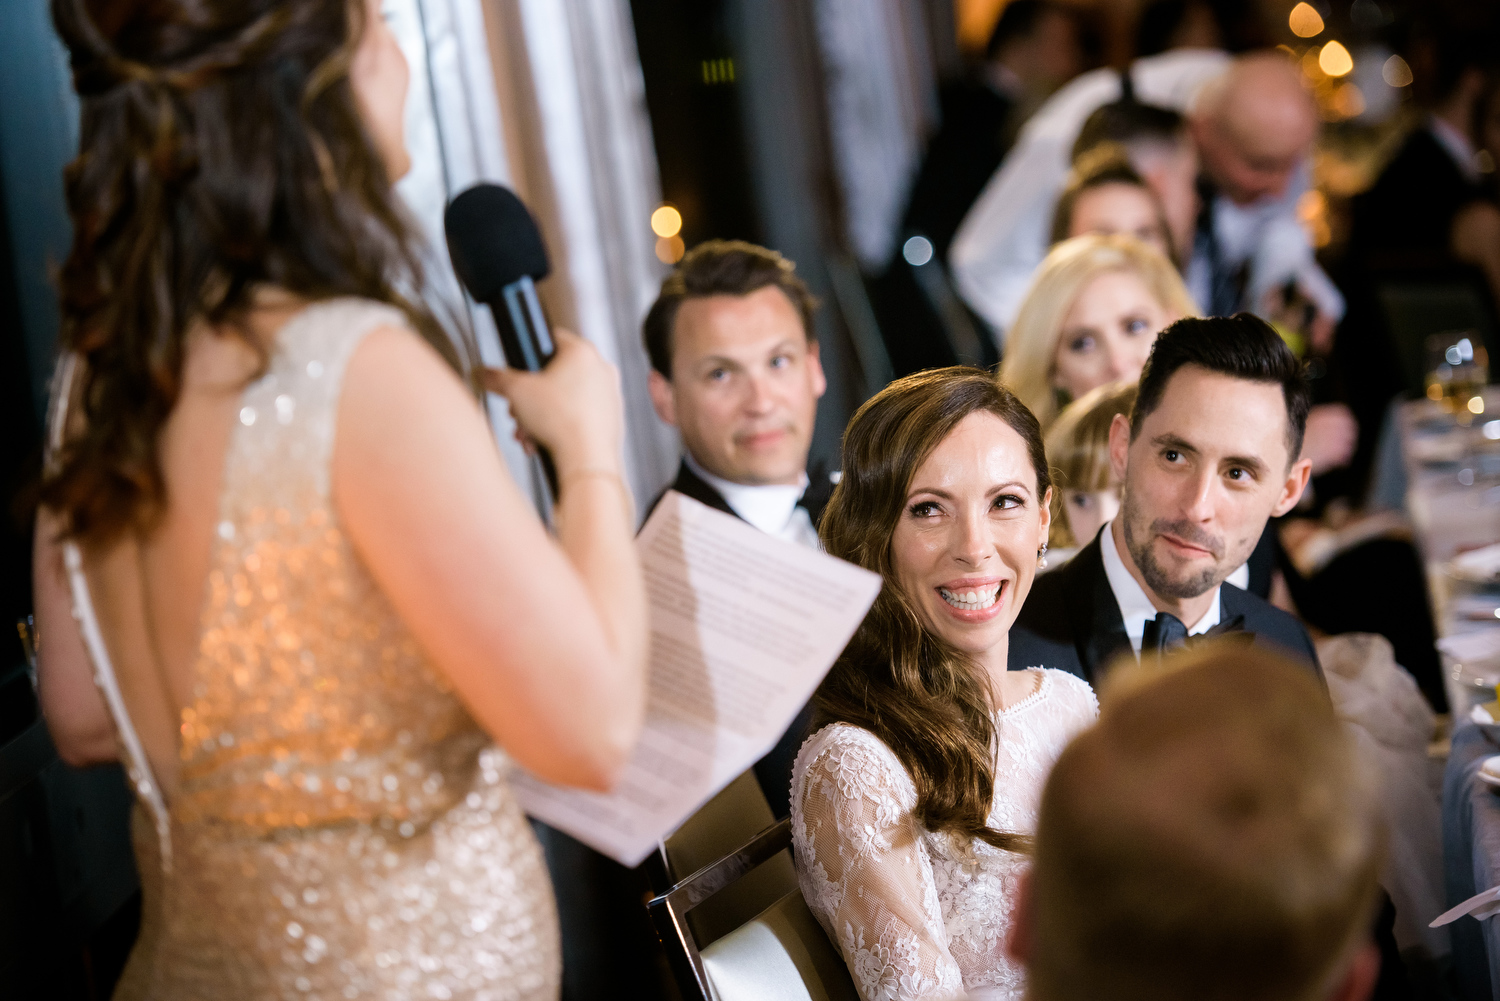 Maid of honor toast during a Thompson Chicago wedding reception.